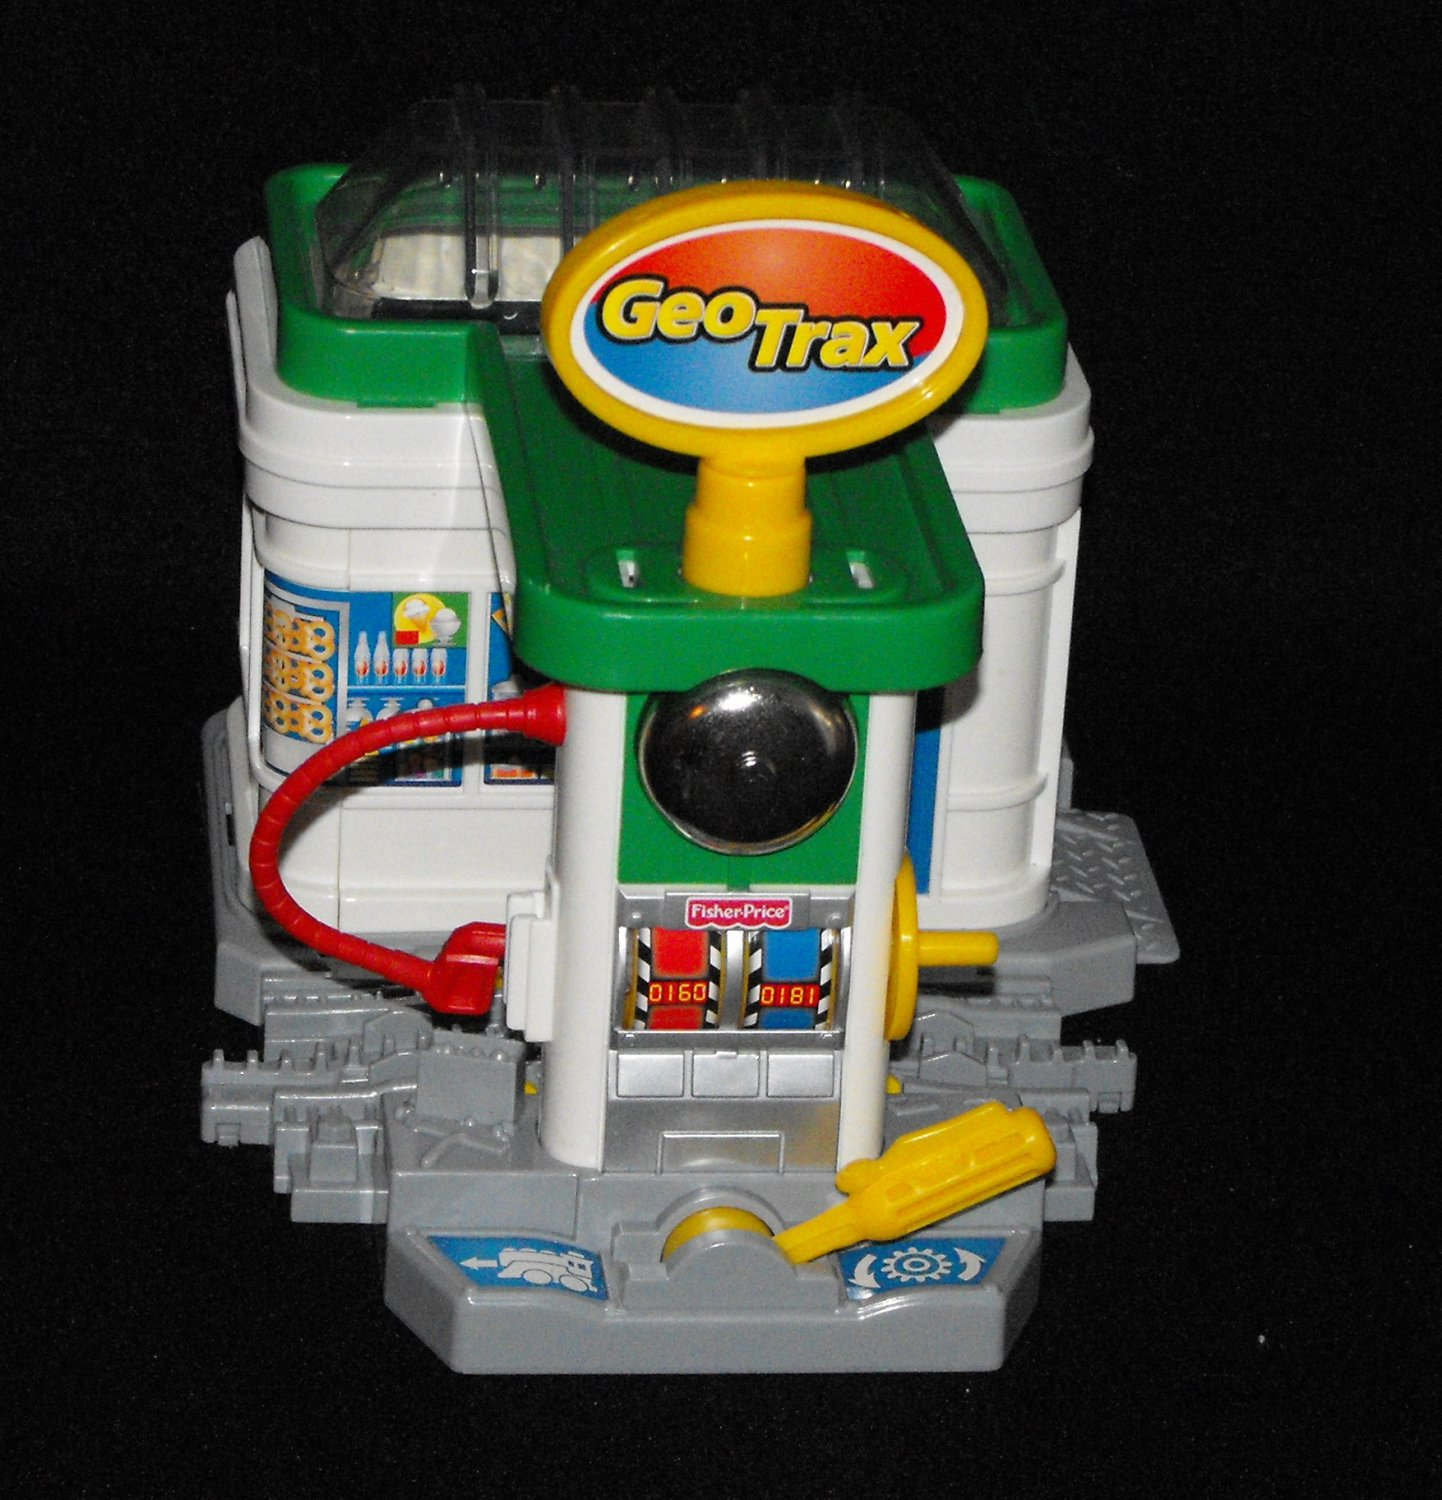 SOLD*Awaiting Feedback*Fisher Price Geotrax Geo Trax Gas n' Go Station Complete